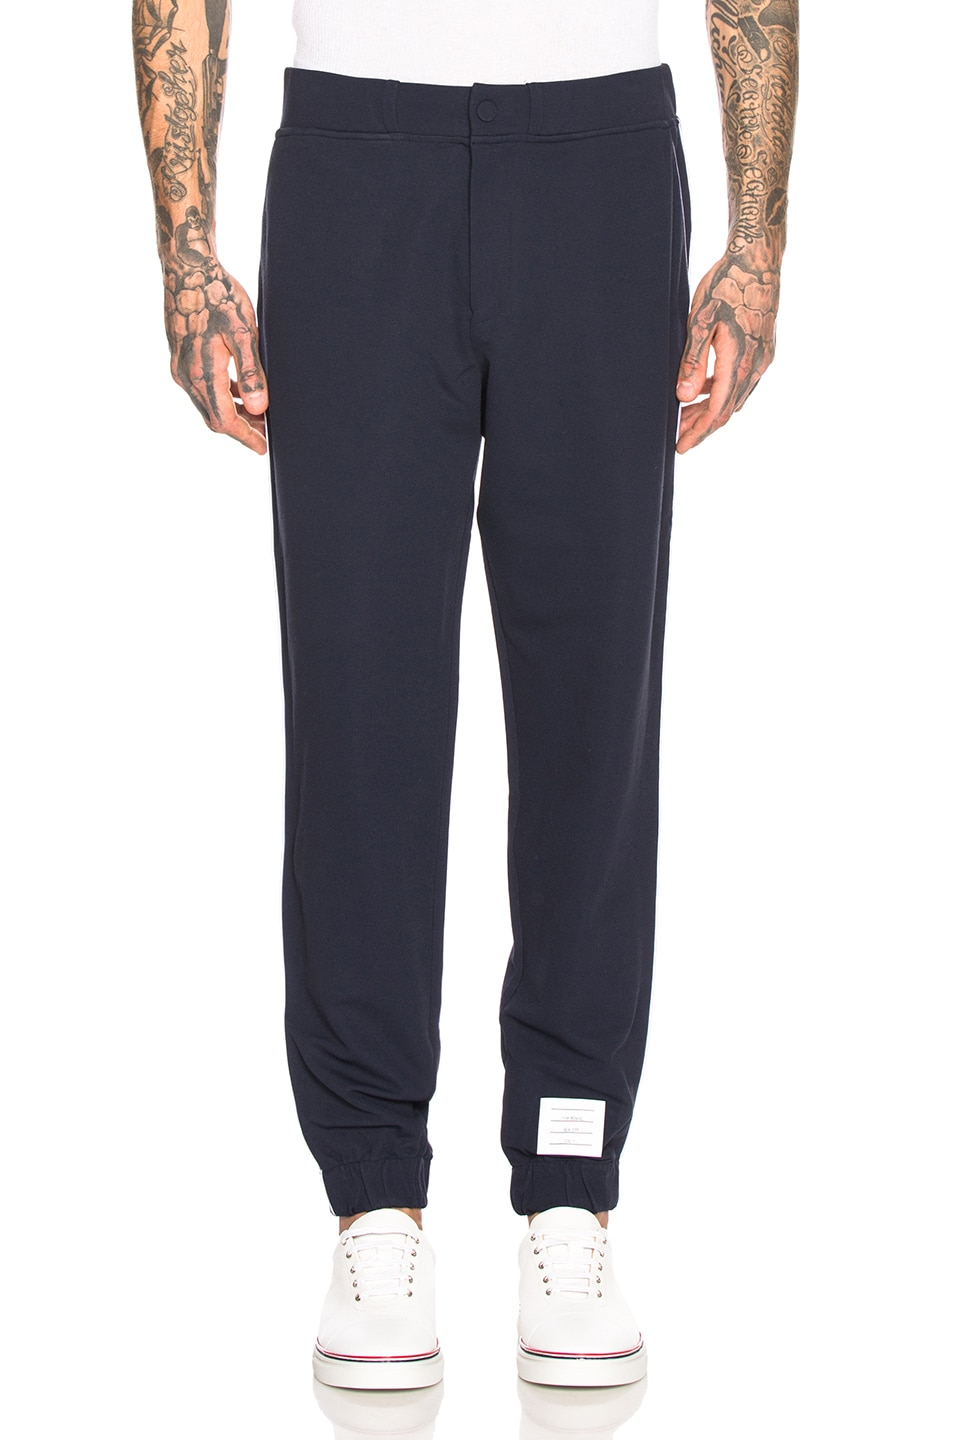 Thom Browne Technical Knit Piping Sweatpants Navy 80%OFF